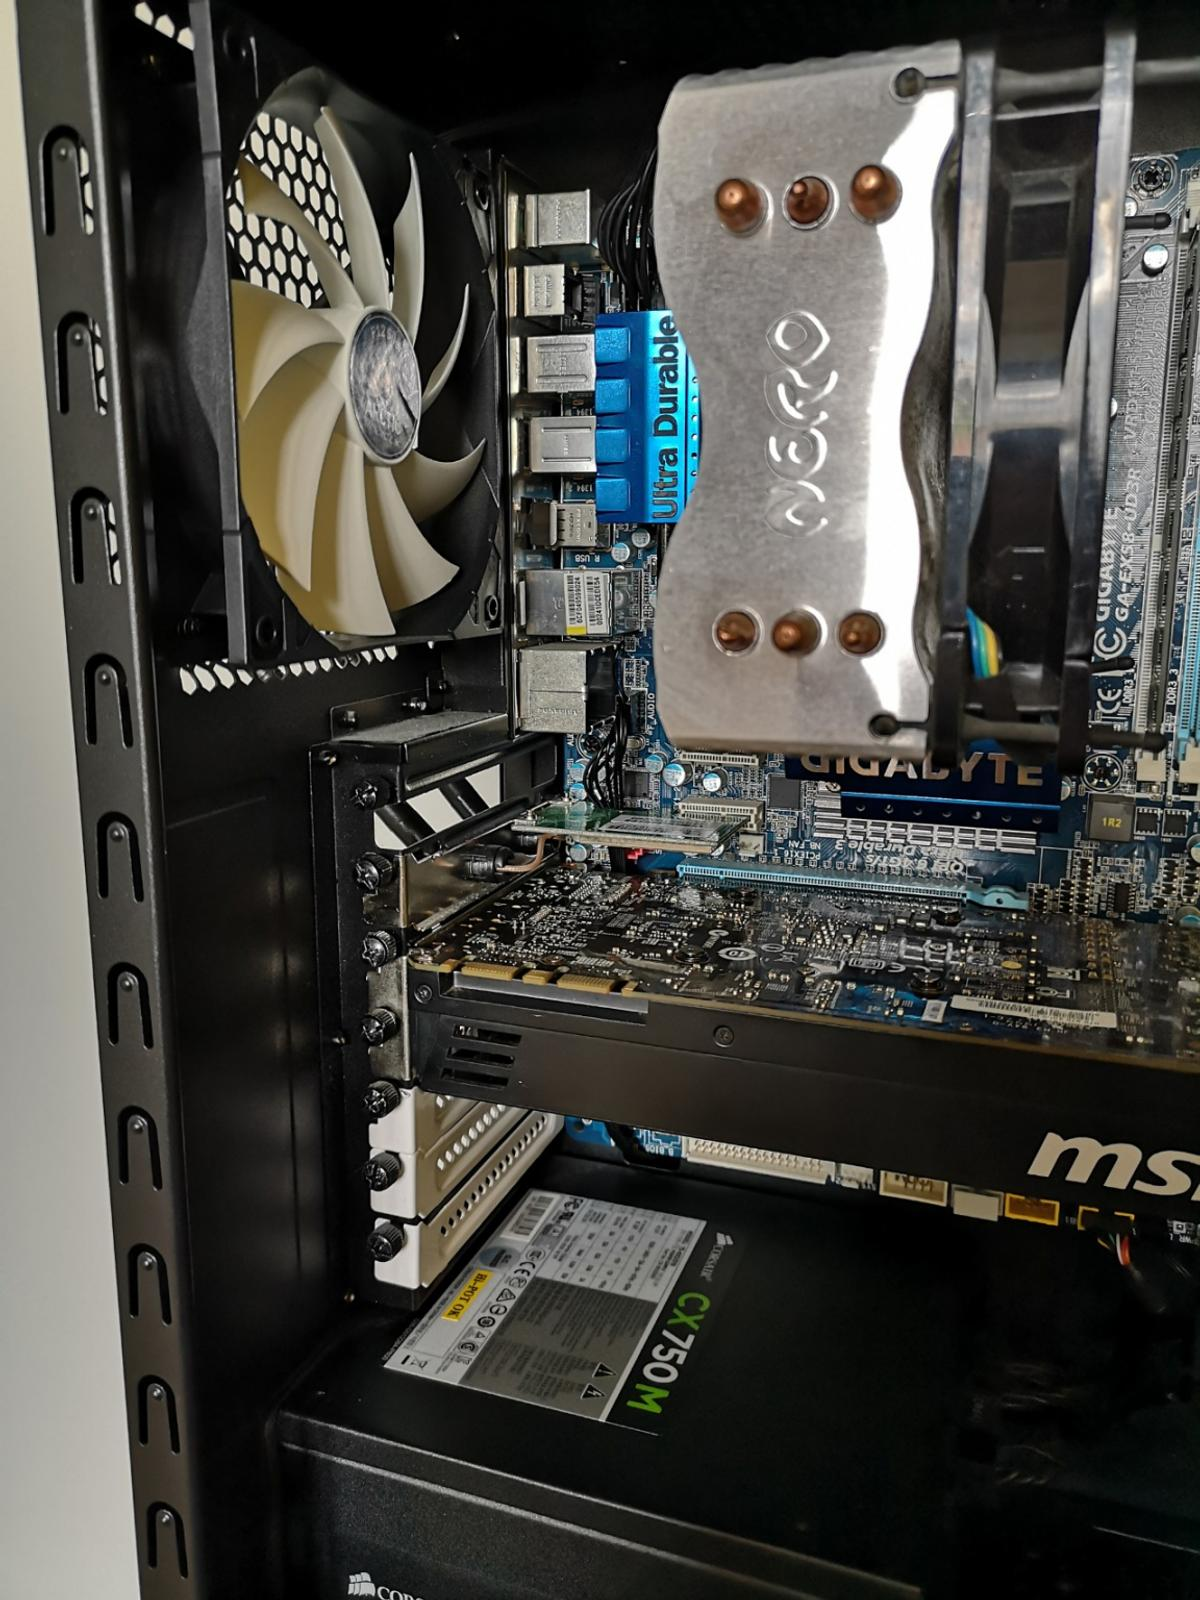 6 core 4 2 ghz gaming pc gtx 970 in WS10 Walsall for £370 00